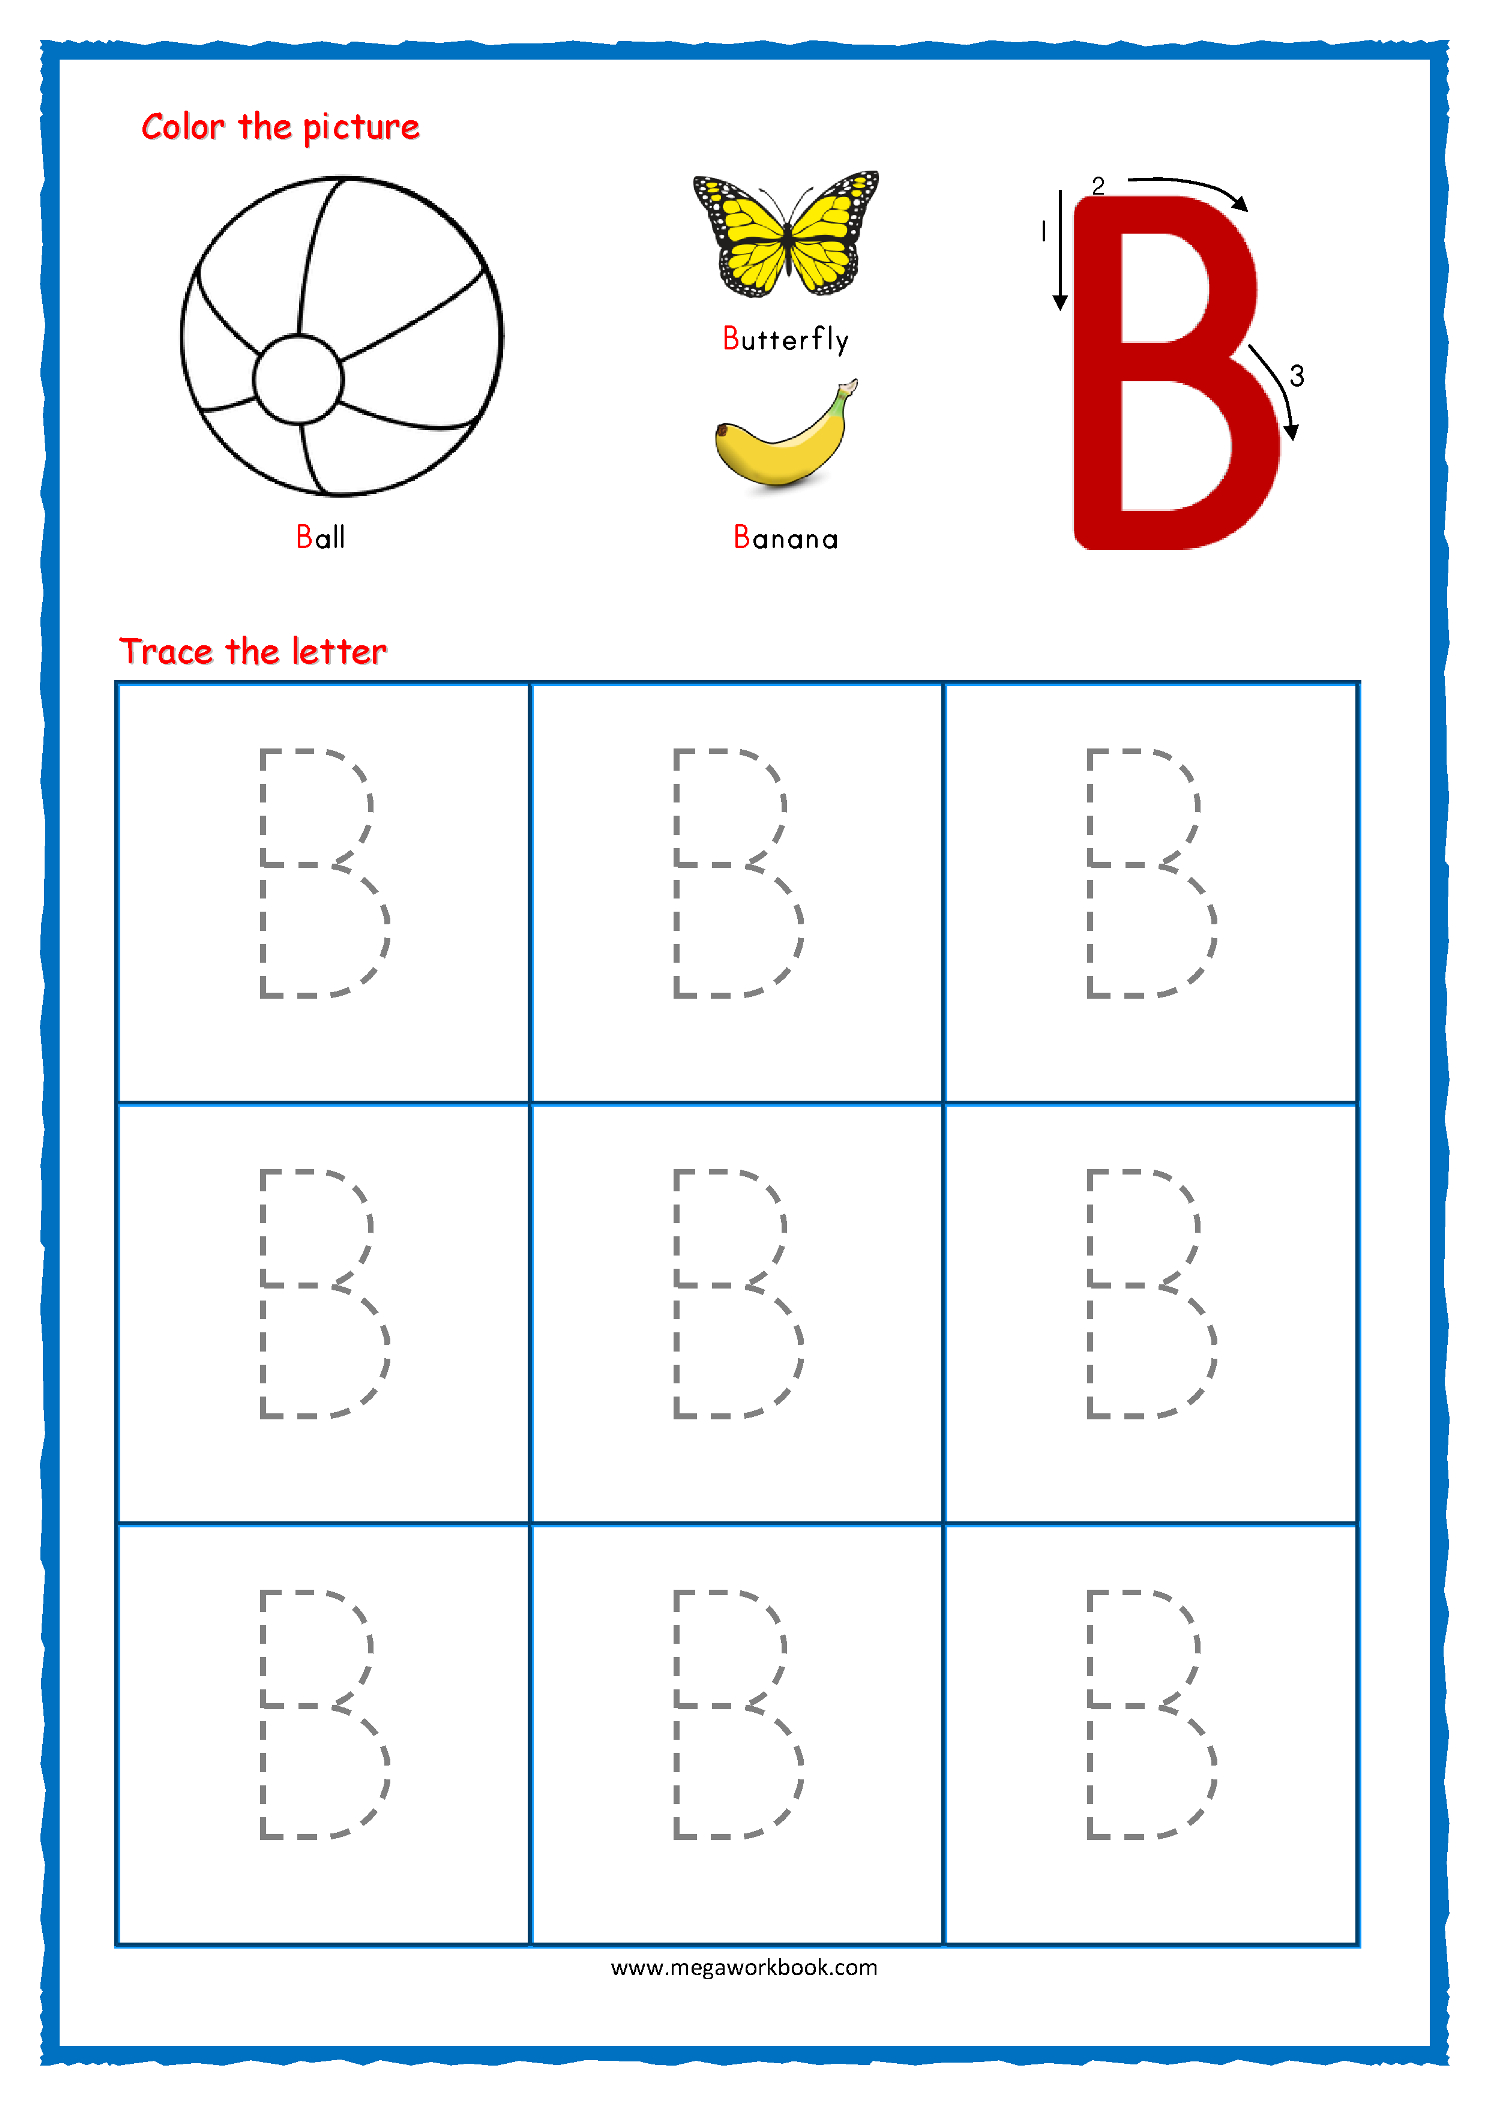 Coloring Book : Letter Tracingts Free Printable Coloring with Trace Letter A Worksheets Free